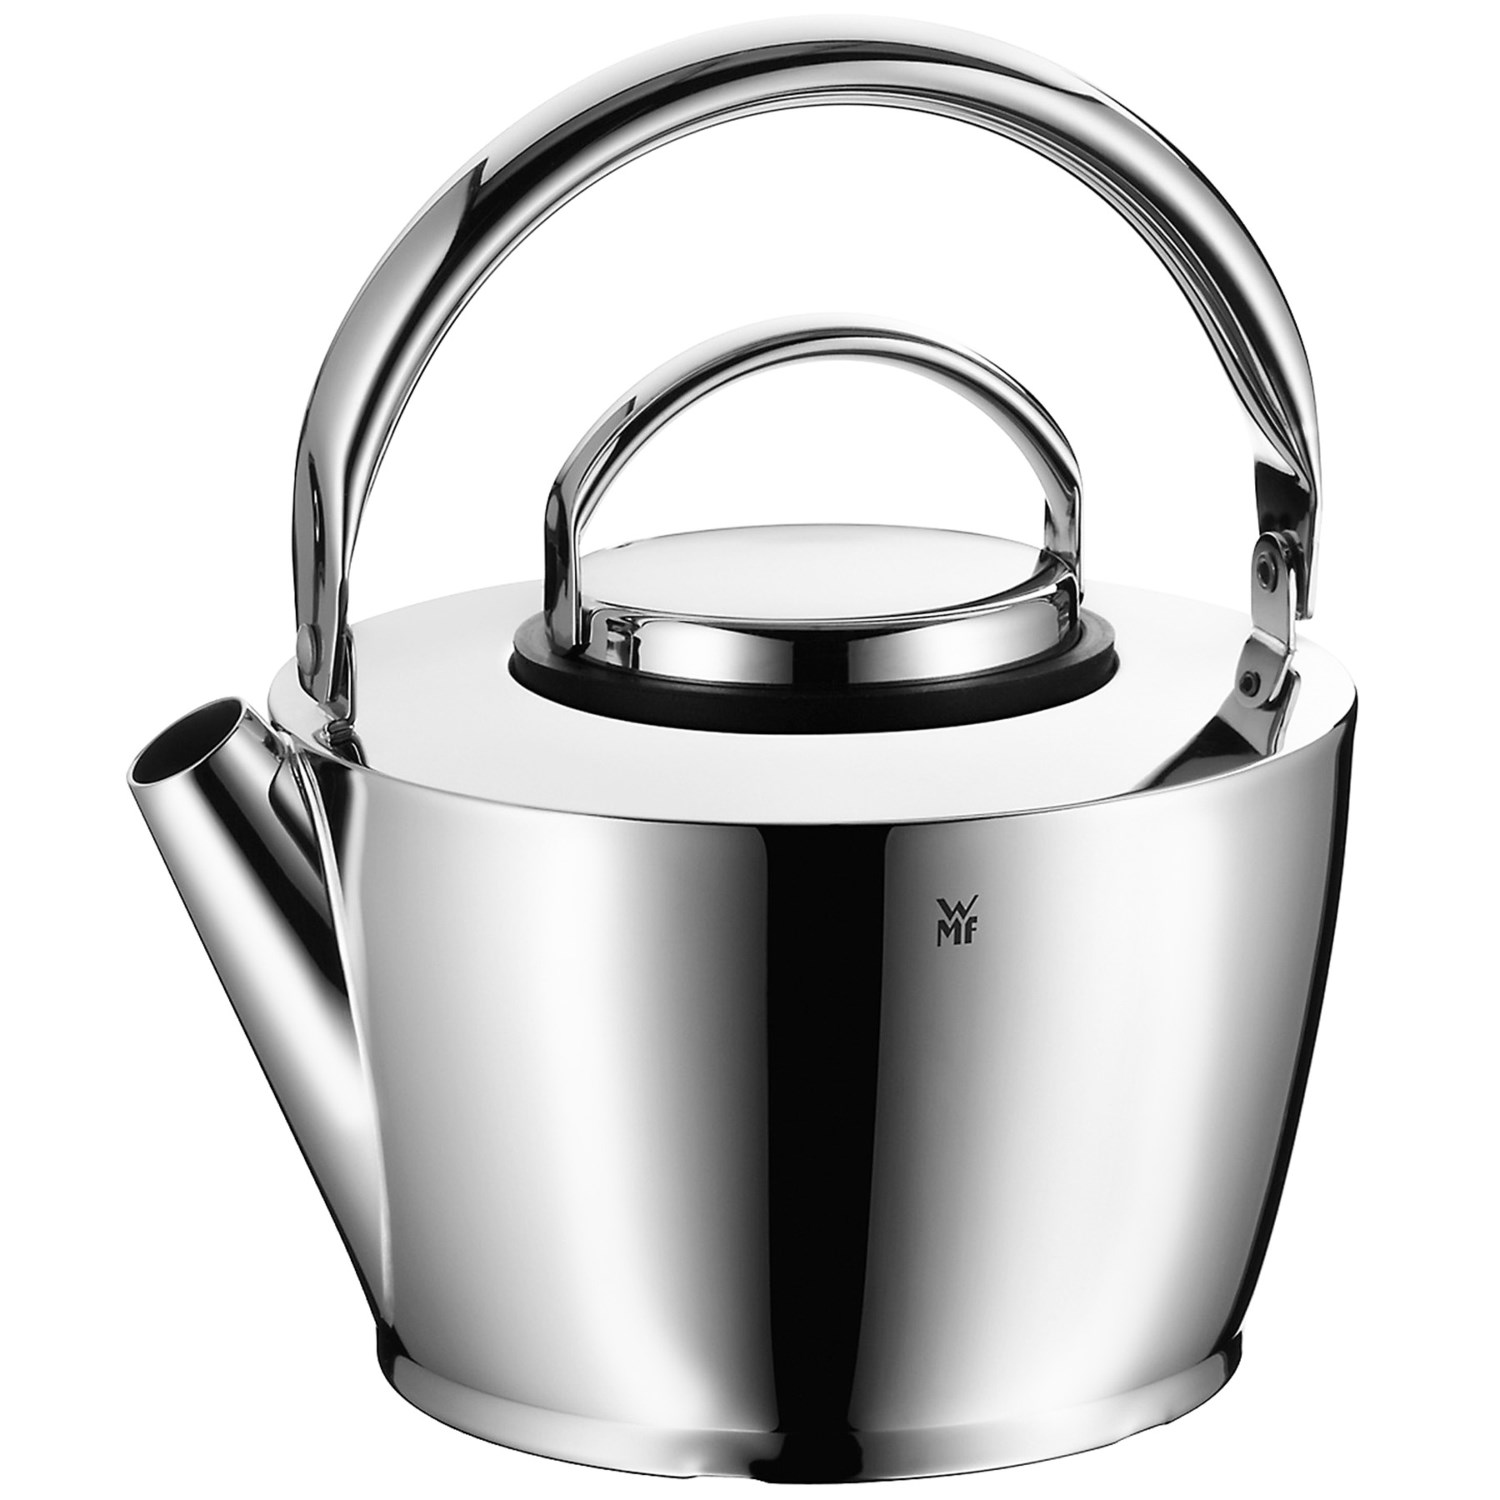 wmf cromargan 18 10 stainless steel tea kettle with strainer save 26. Black Bedroom Furniture Sets. Home Design Ideas